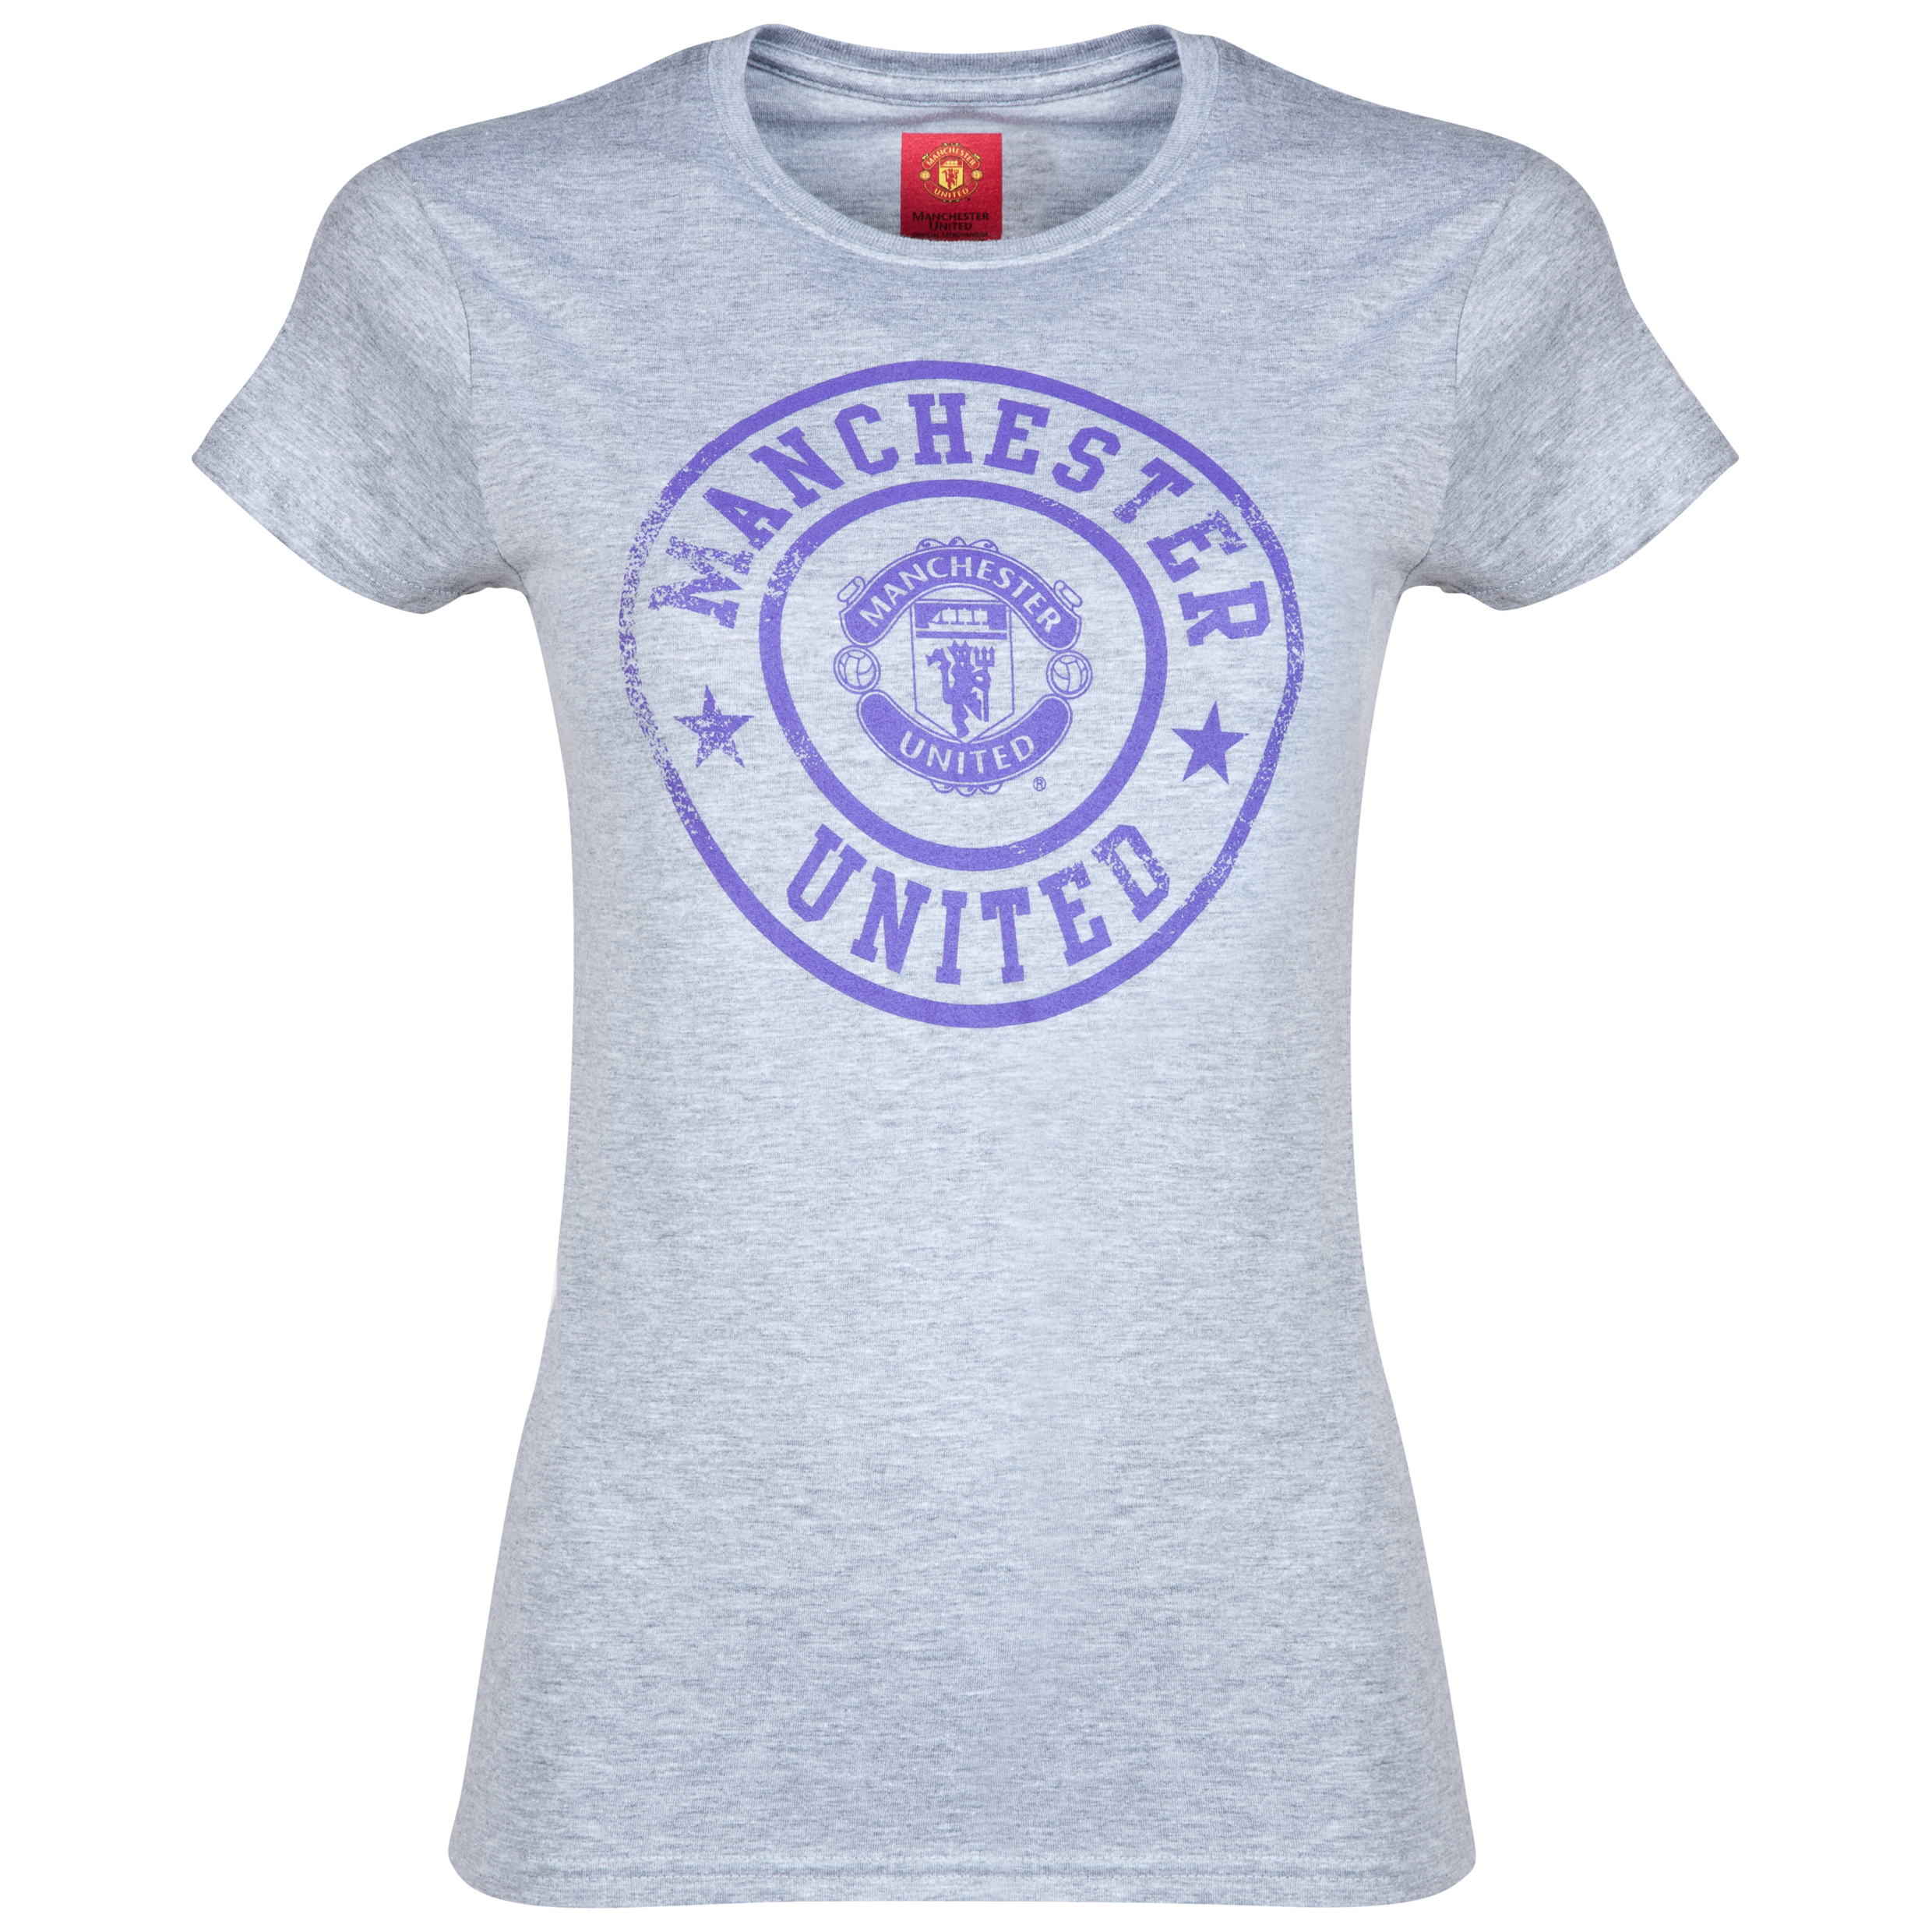 Manchester United Distressed Stamp T-Shirt - Womens Grey